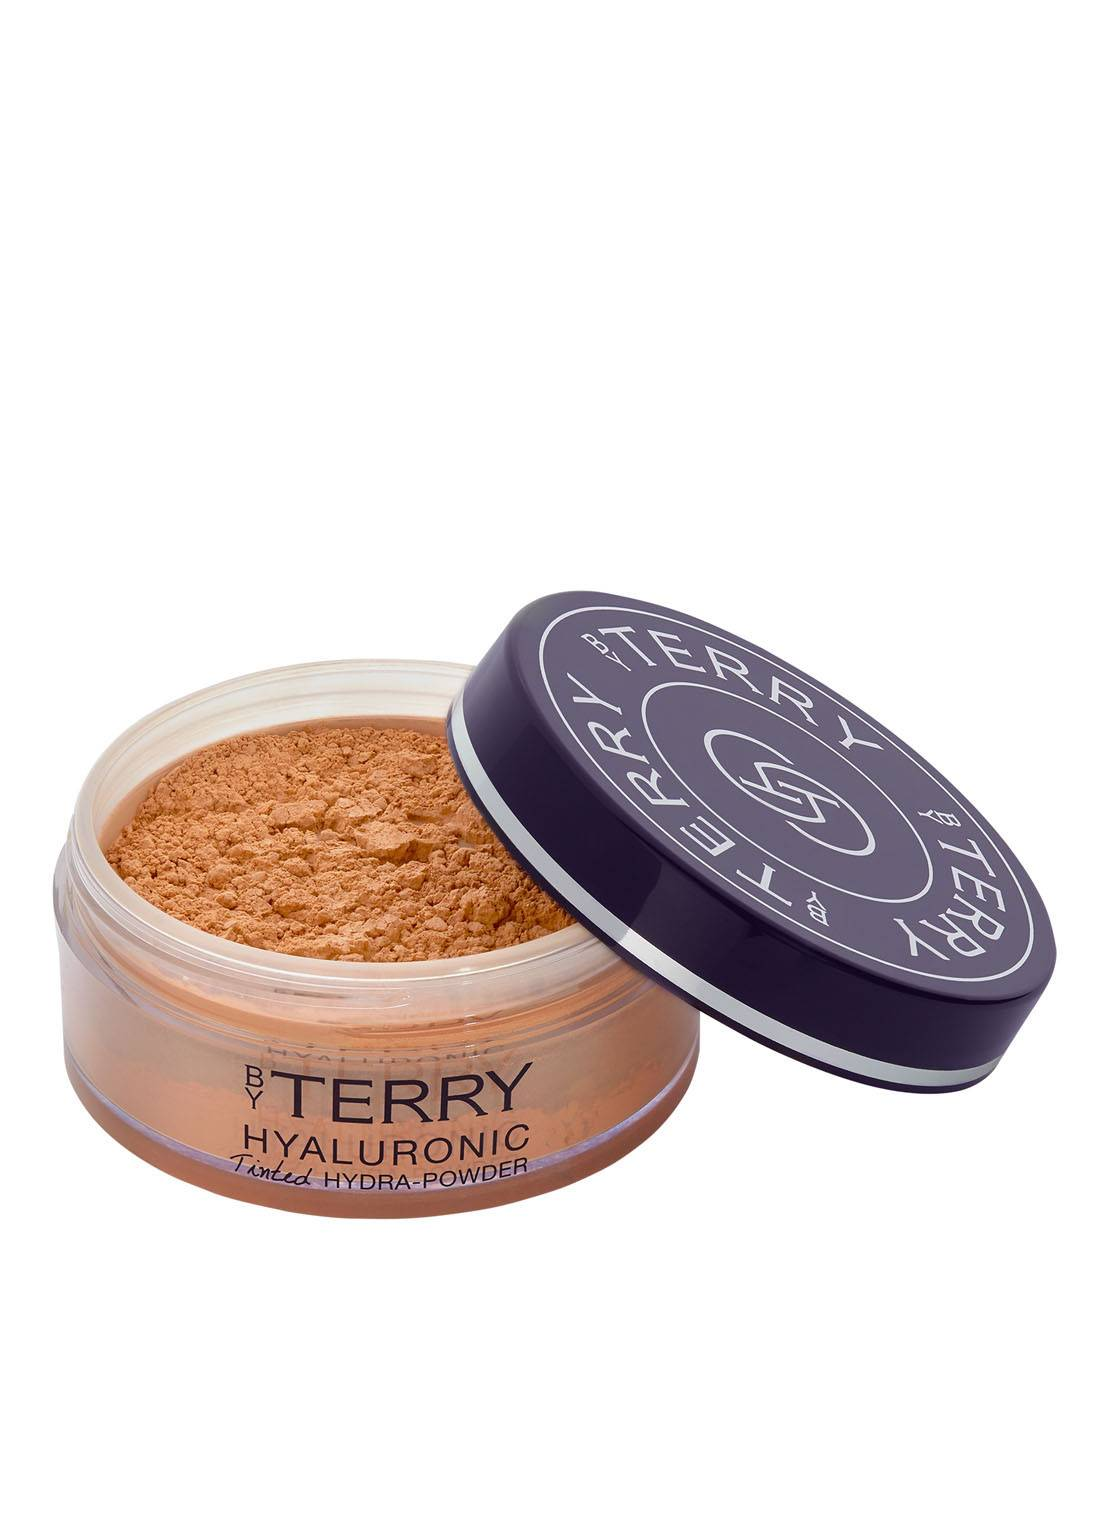 By Terry Hyaluronic Tinted Hydra Powder - poudre libre - N400 Medium